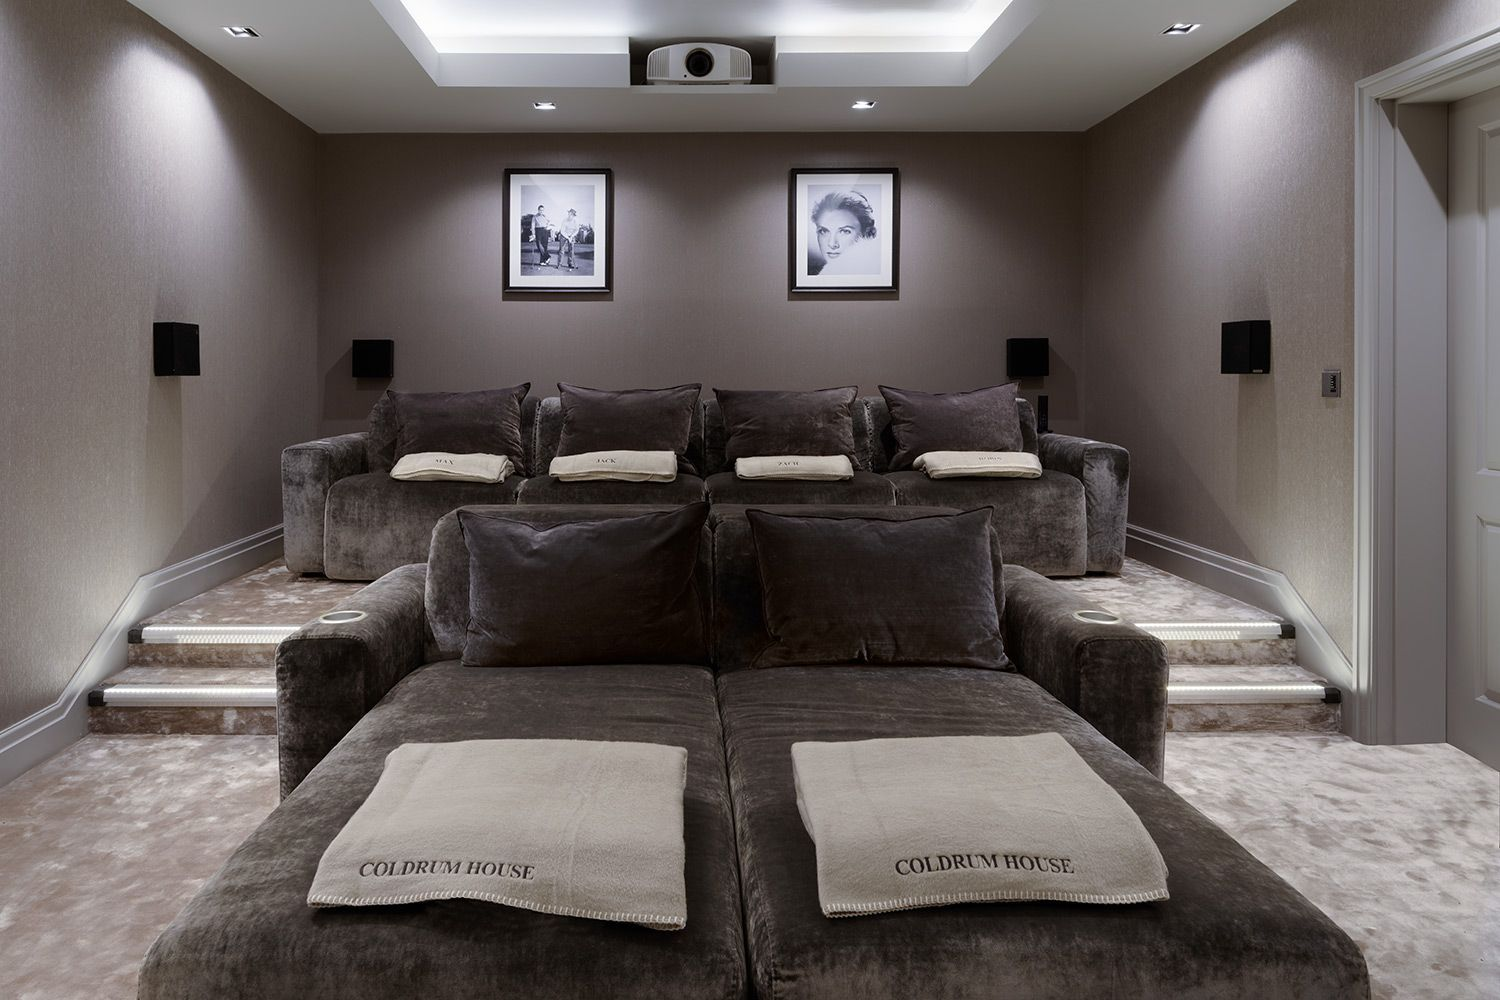 Luxury Home Theatre With Some Rather Special Home Cinema Seating All These Seats Are Recliner Seats In 2020 Home Cinema Room Home Cinema Seating Home Theater Seating